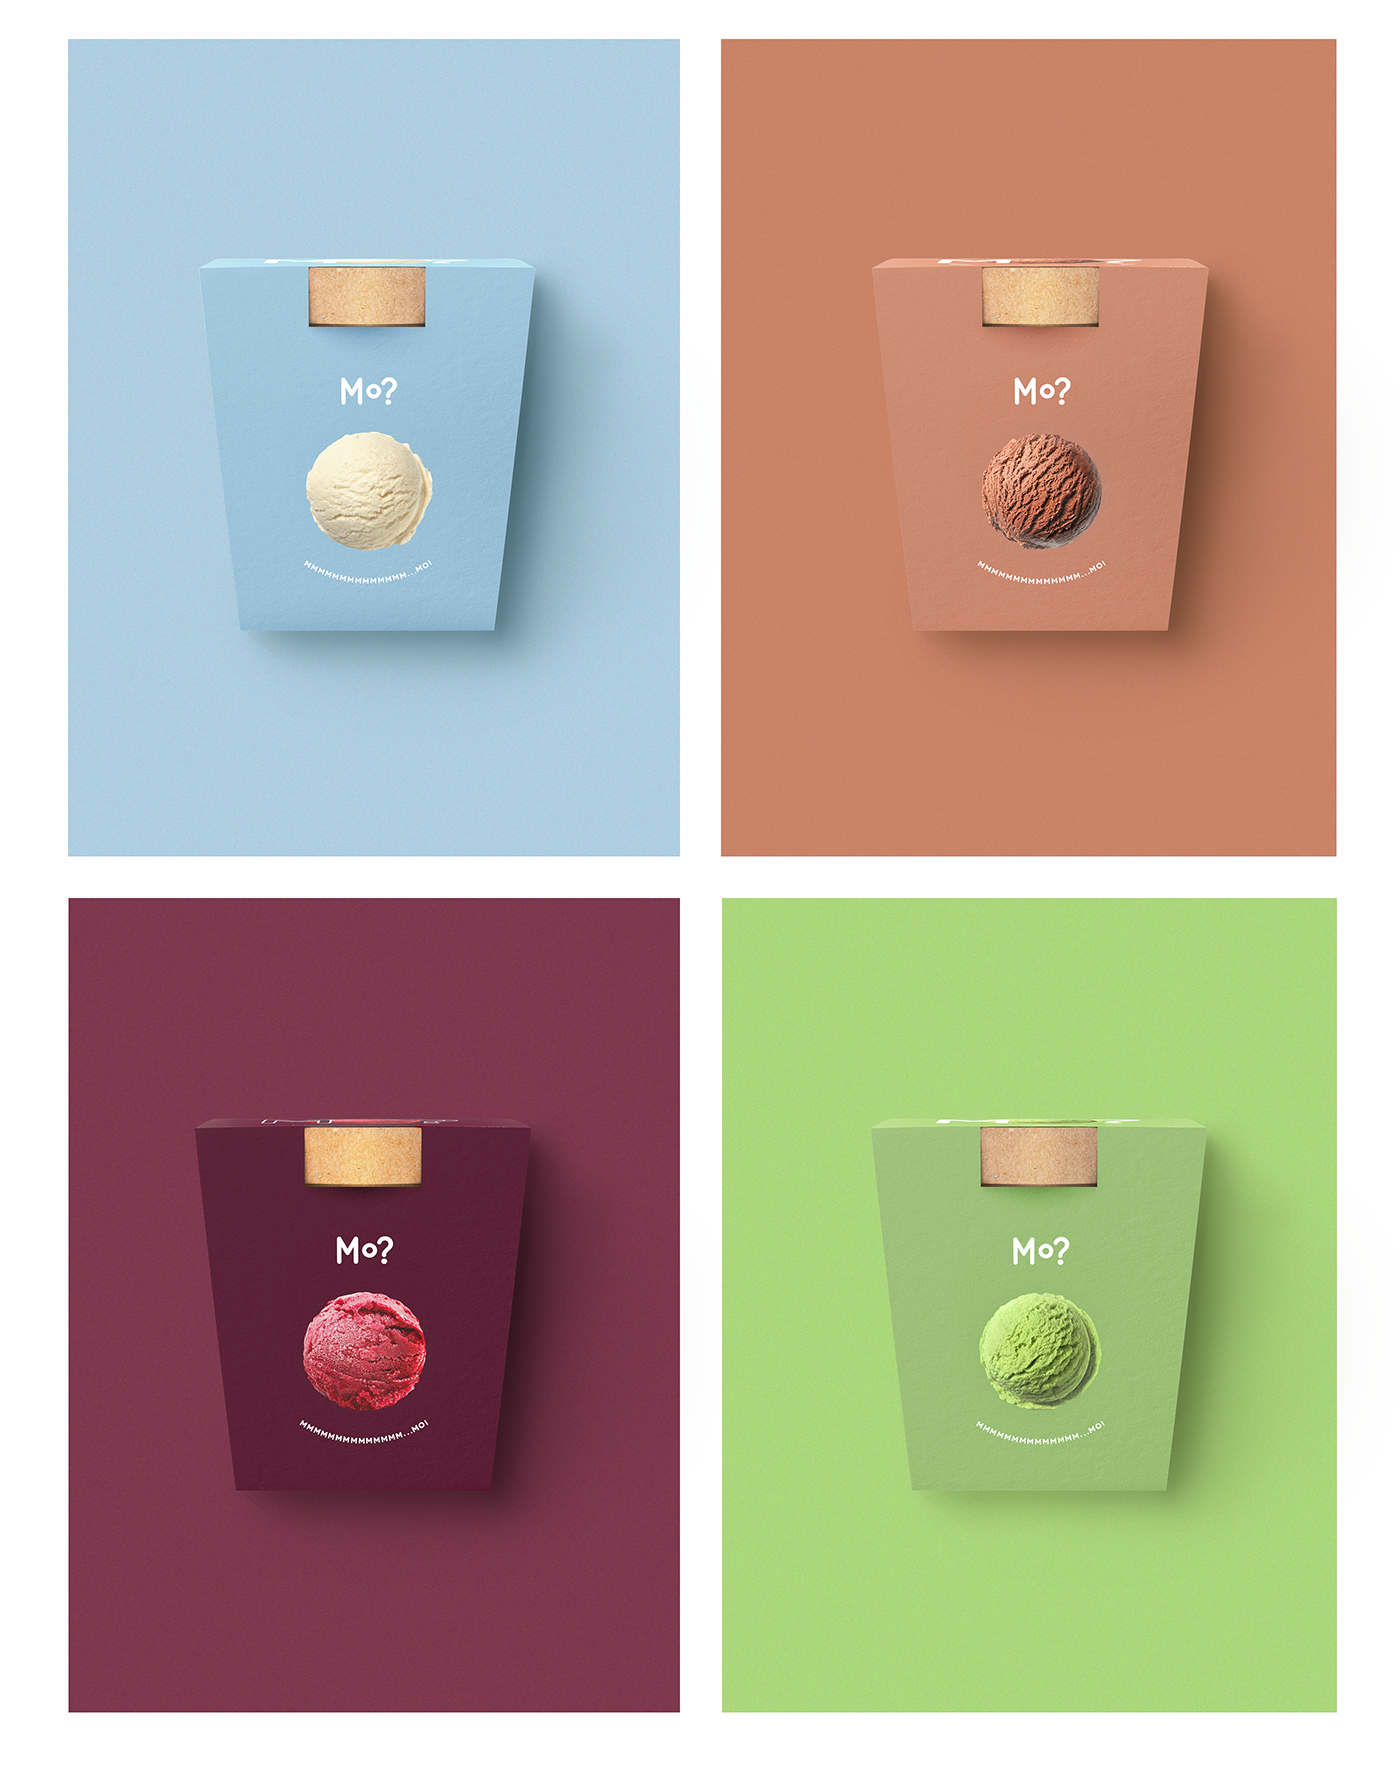 ice cream package identity Packaging brand poster print colorful Advertising  creative